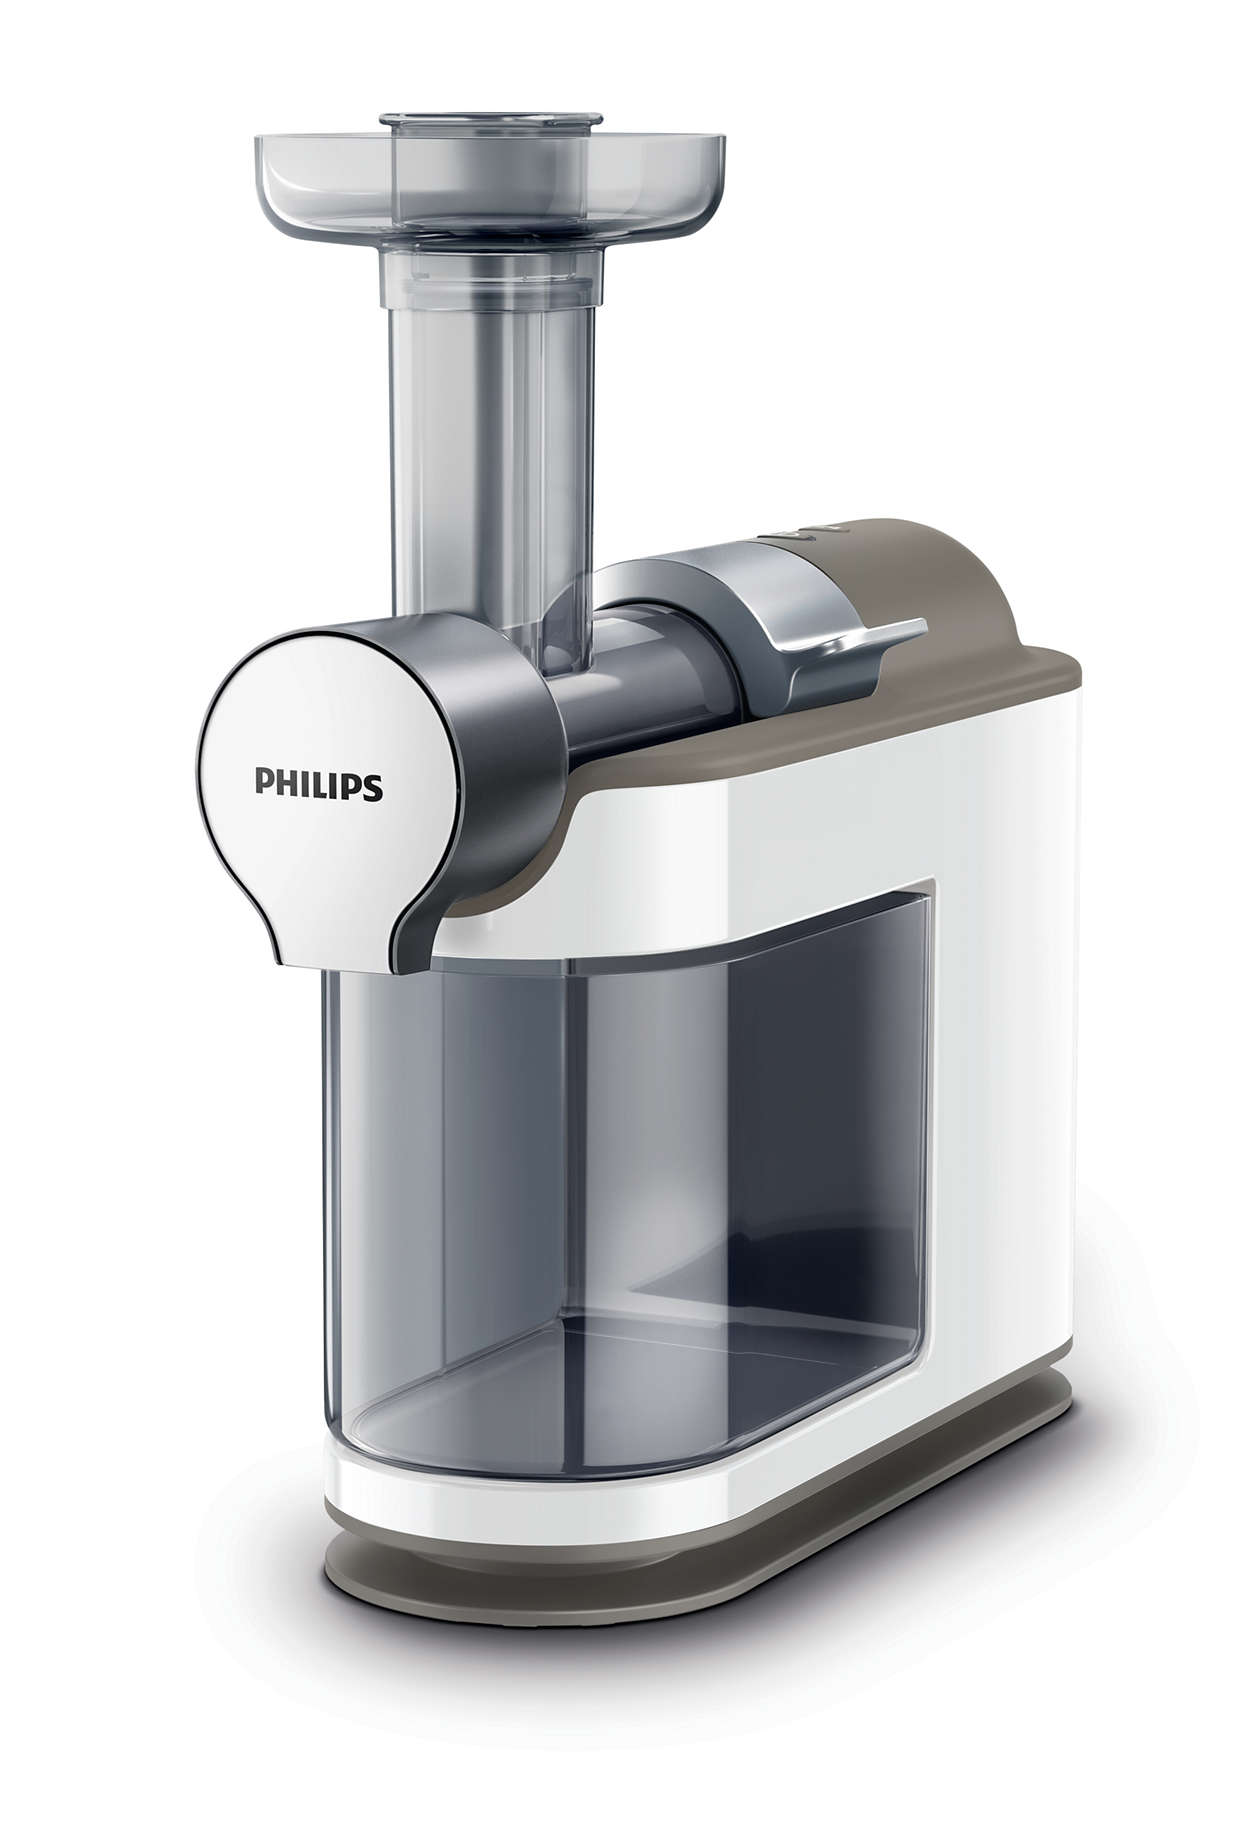 Philips Slowjuicer Elgiganten : Avance Collection Slowjuicer (Kallpress) HR1894/80 Philips